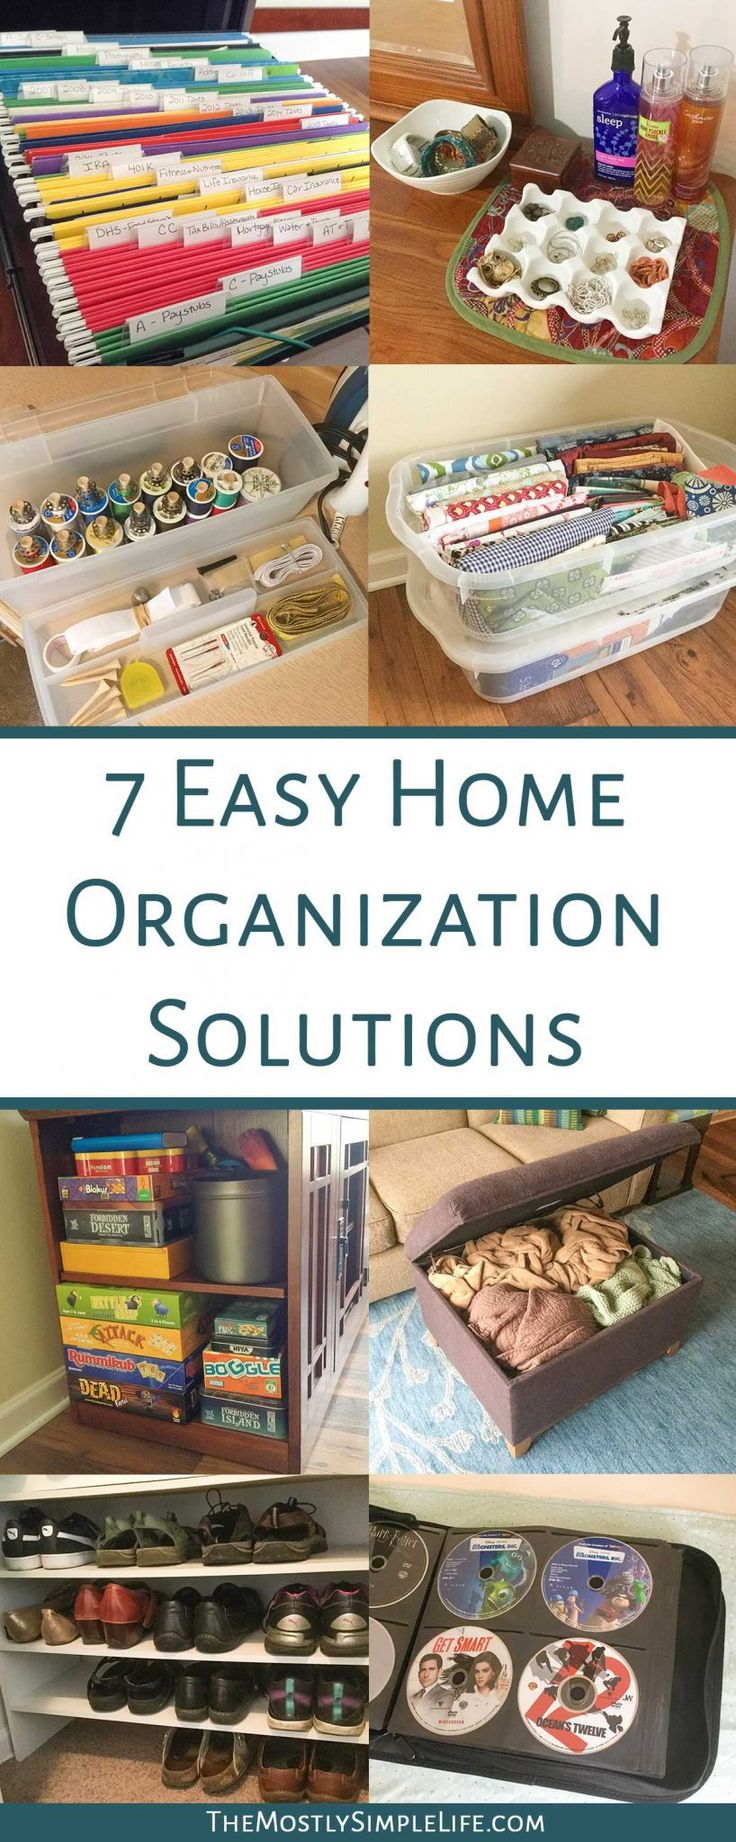 28 best bryan images on pinterest hgtv television and eye candy 7 home organization solutions